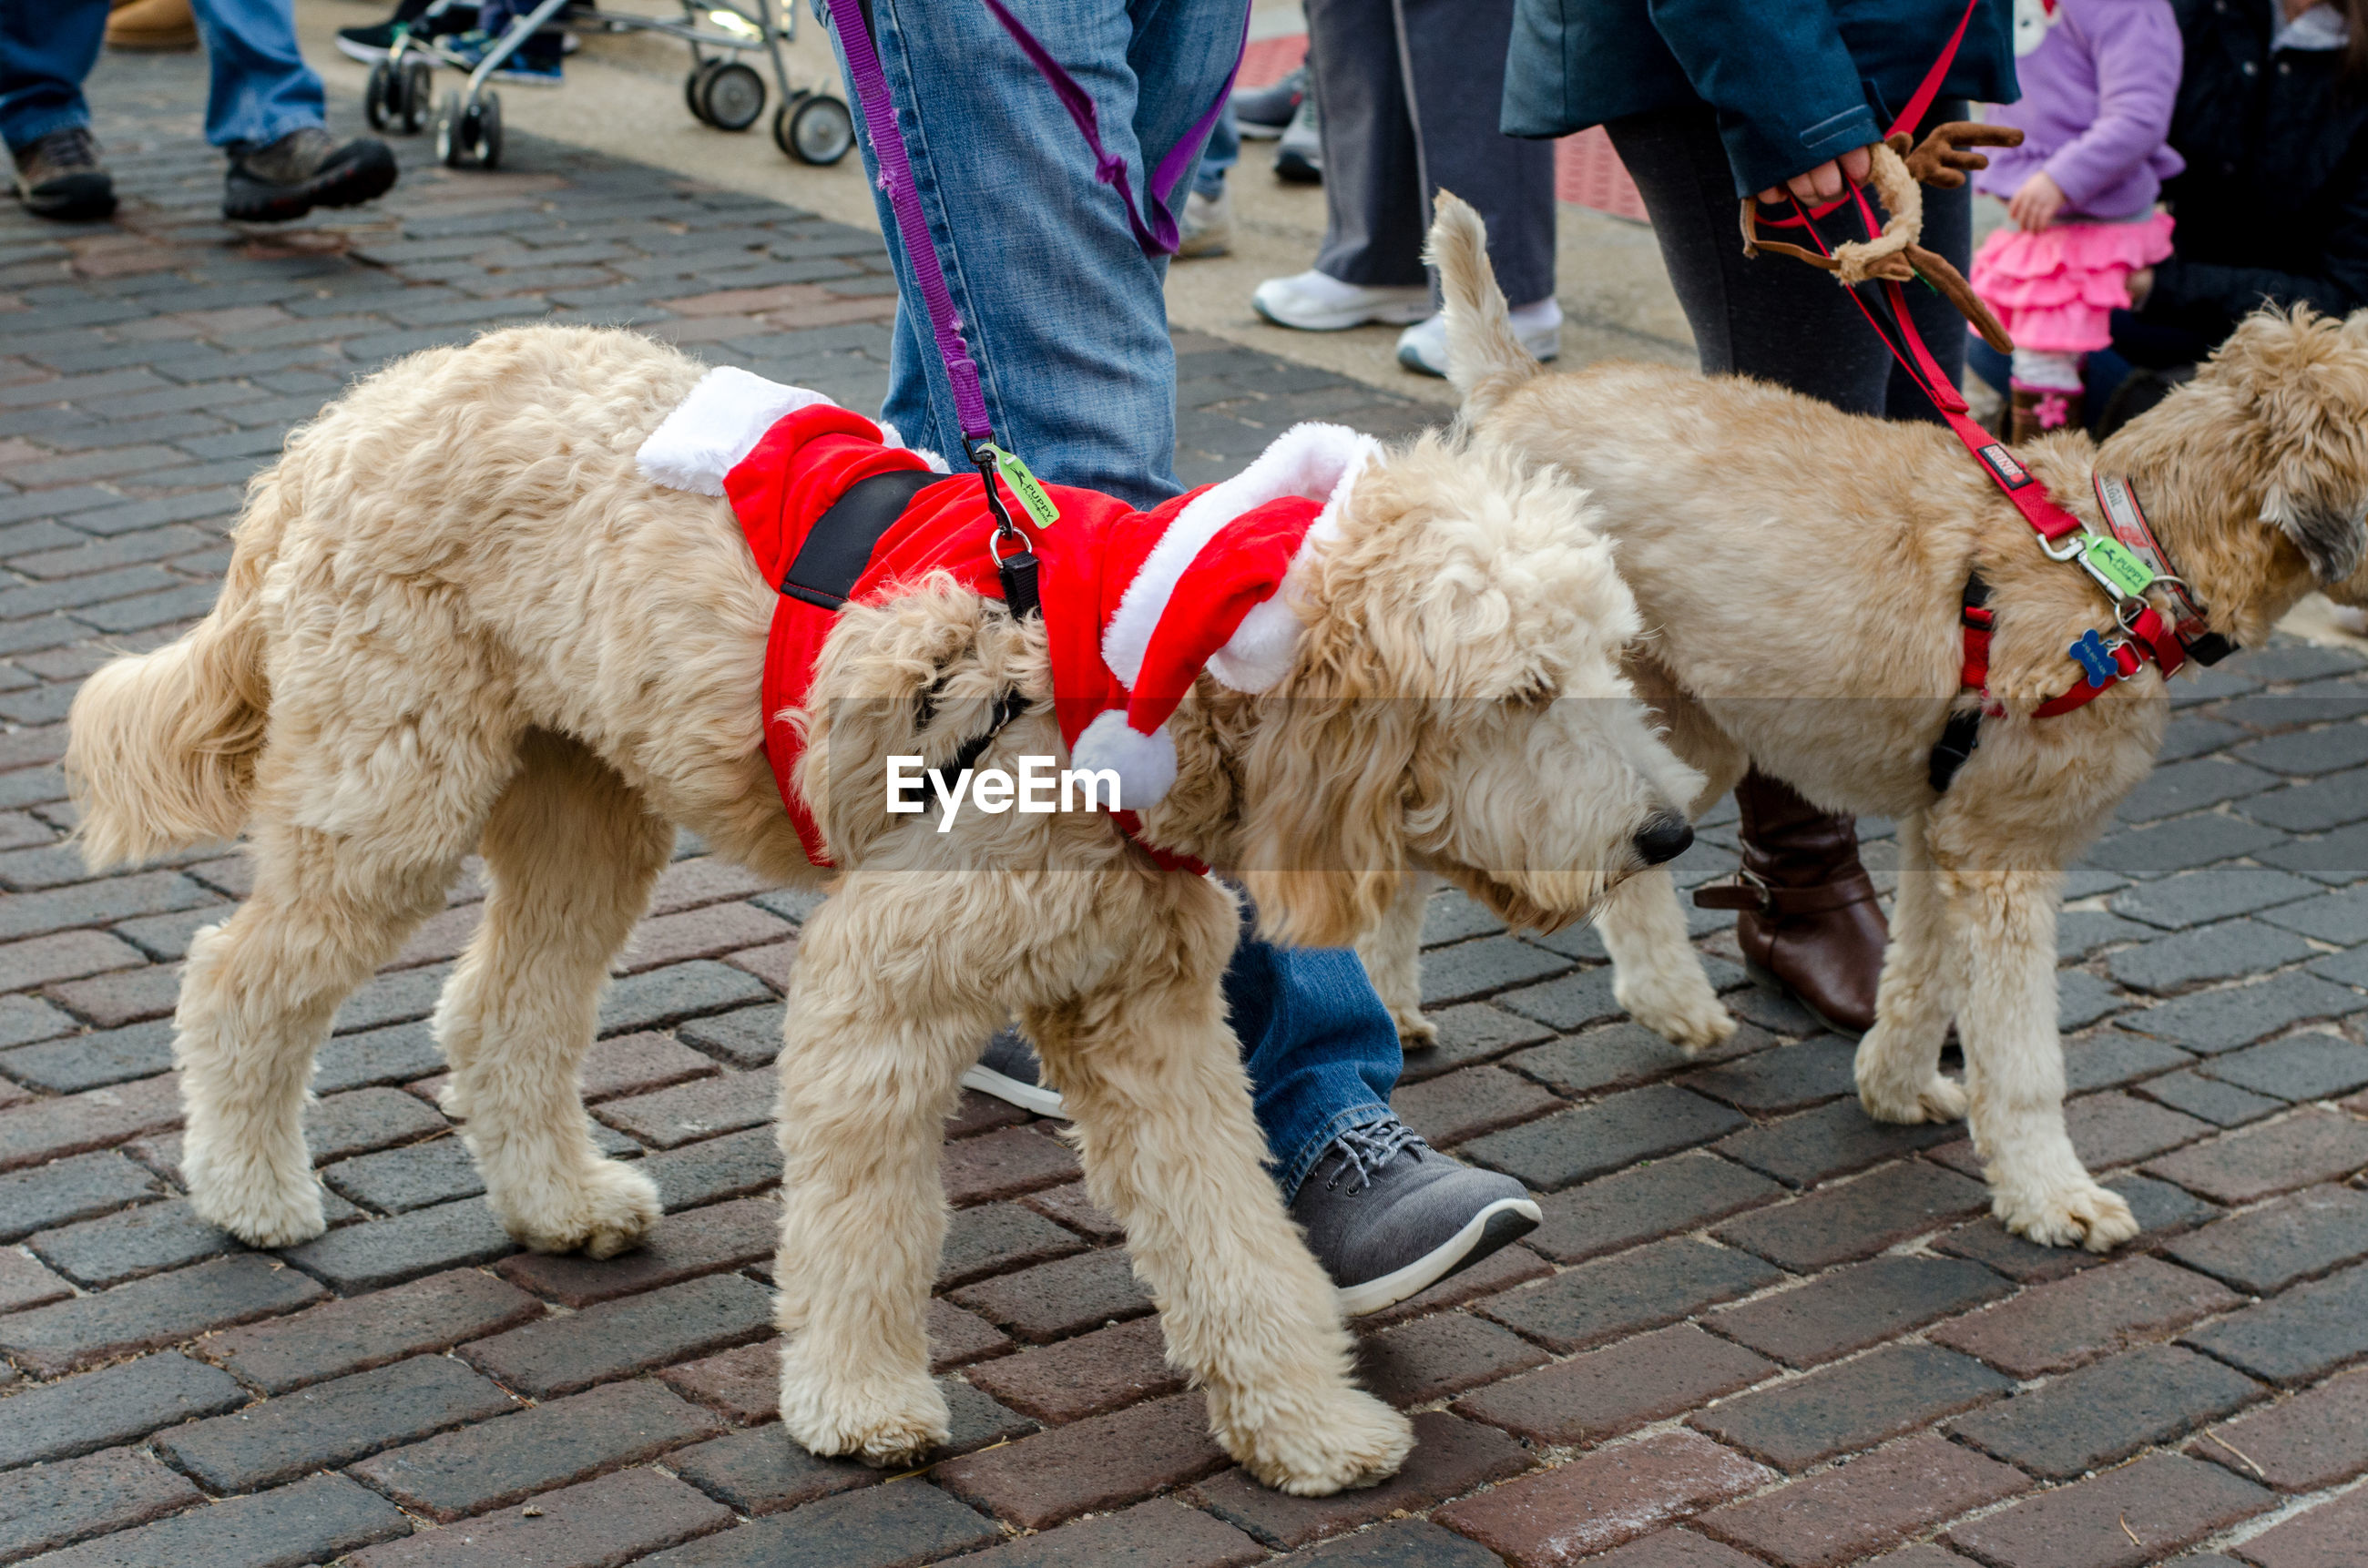 Curly haired dogs in santa costumes, participate in annual reindog parade in st joseph mi usa